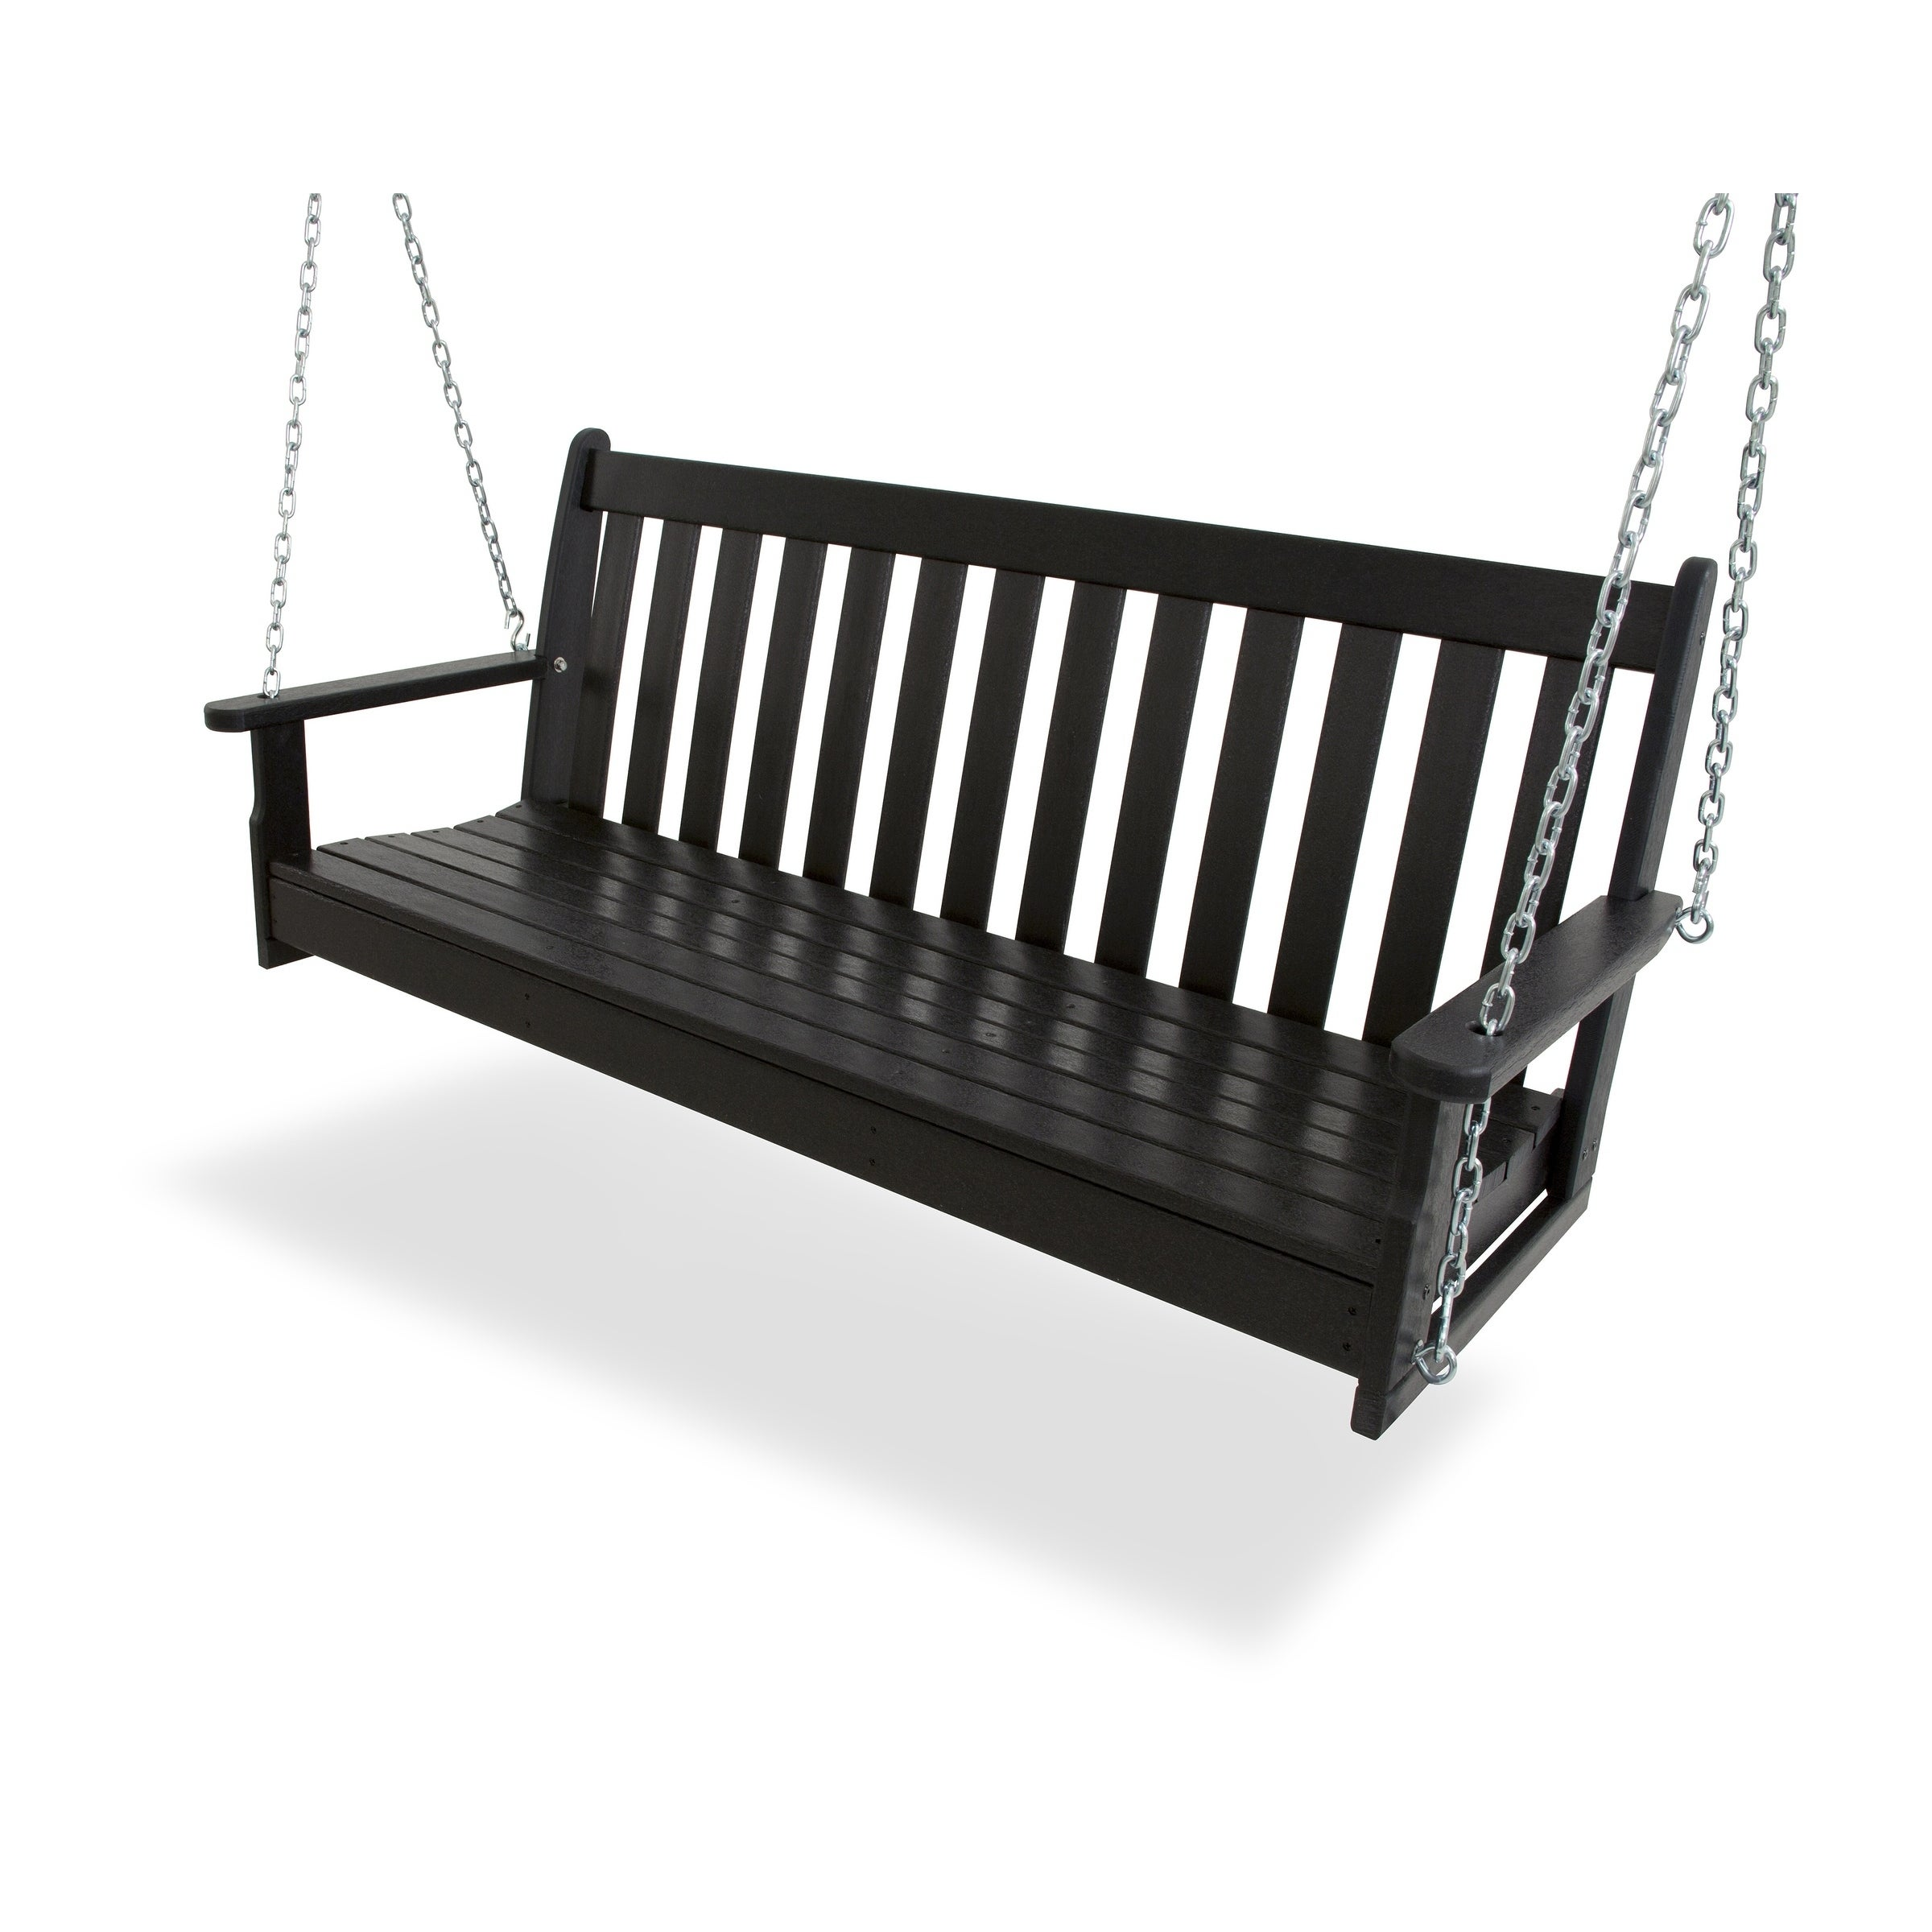 Phenomenal Buy Hammocks Porch Swings Online At Overstock Our Best Squirreltailoven Fun Painted Chair Ideas Images Squirreltailovenorg